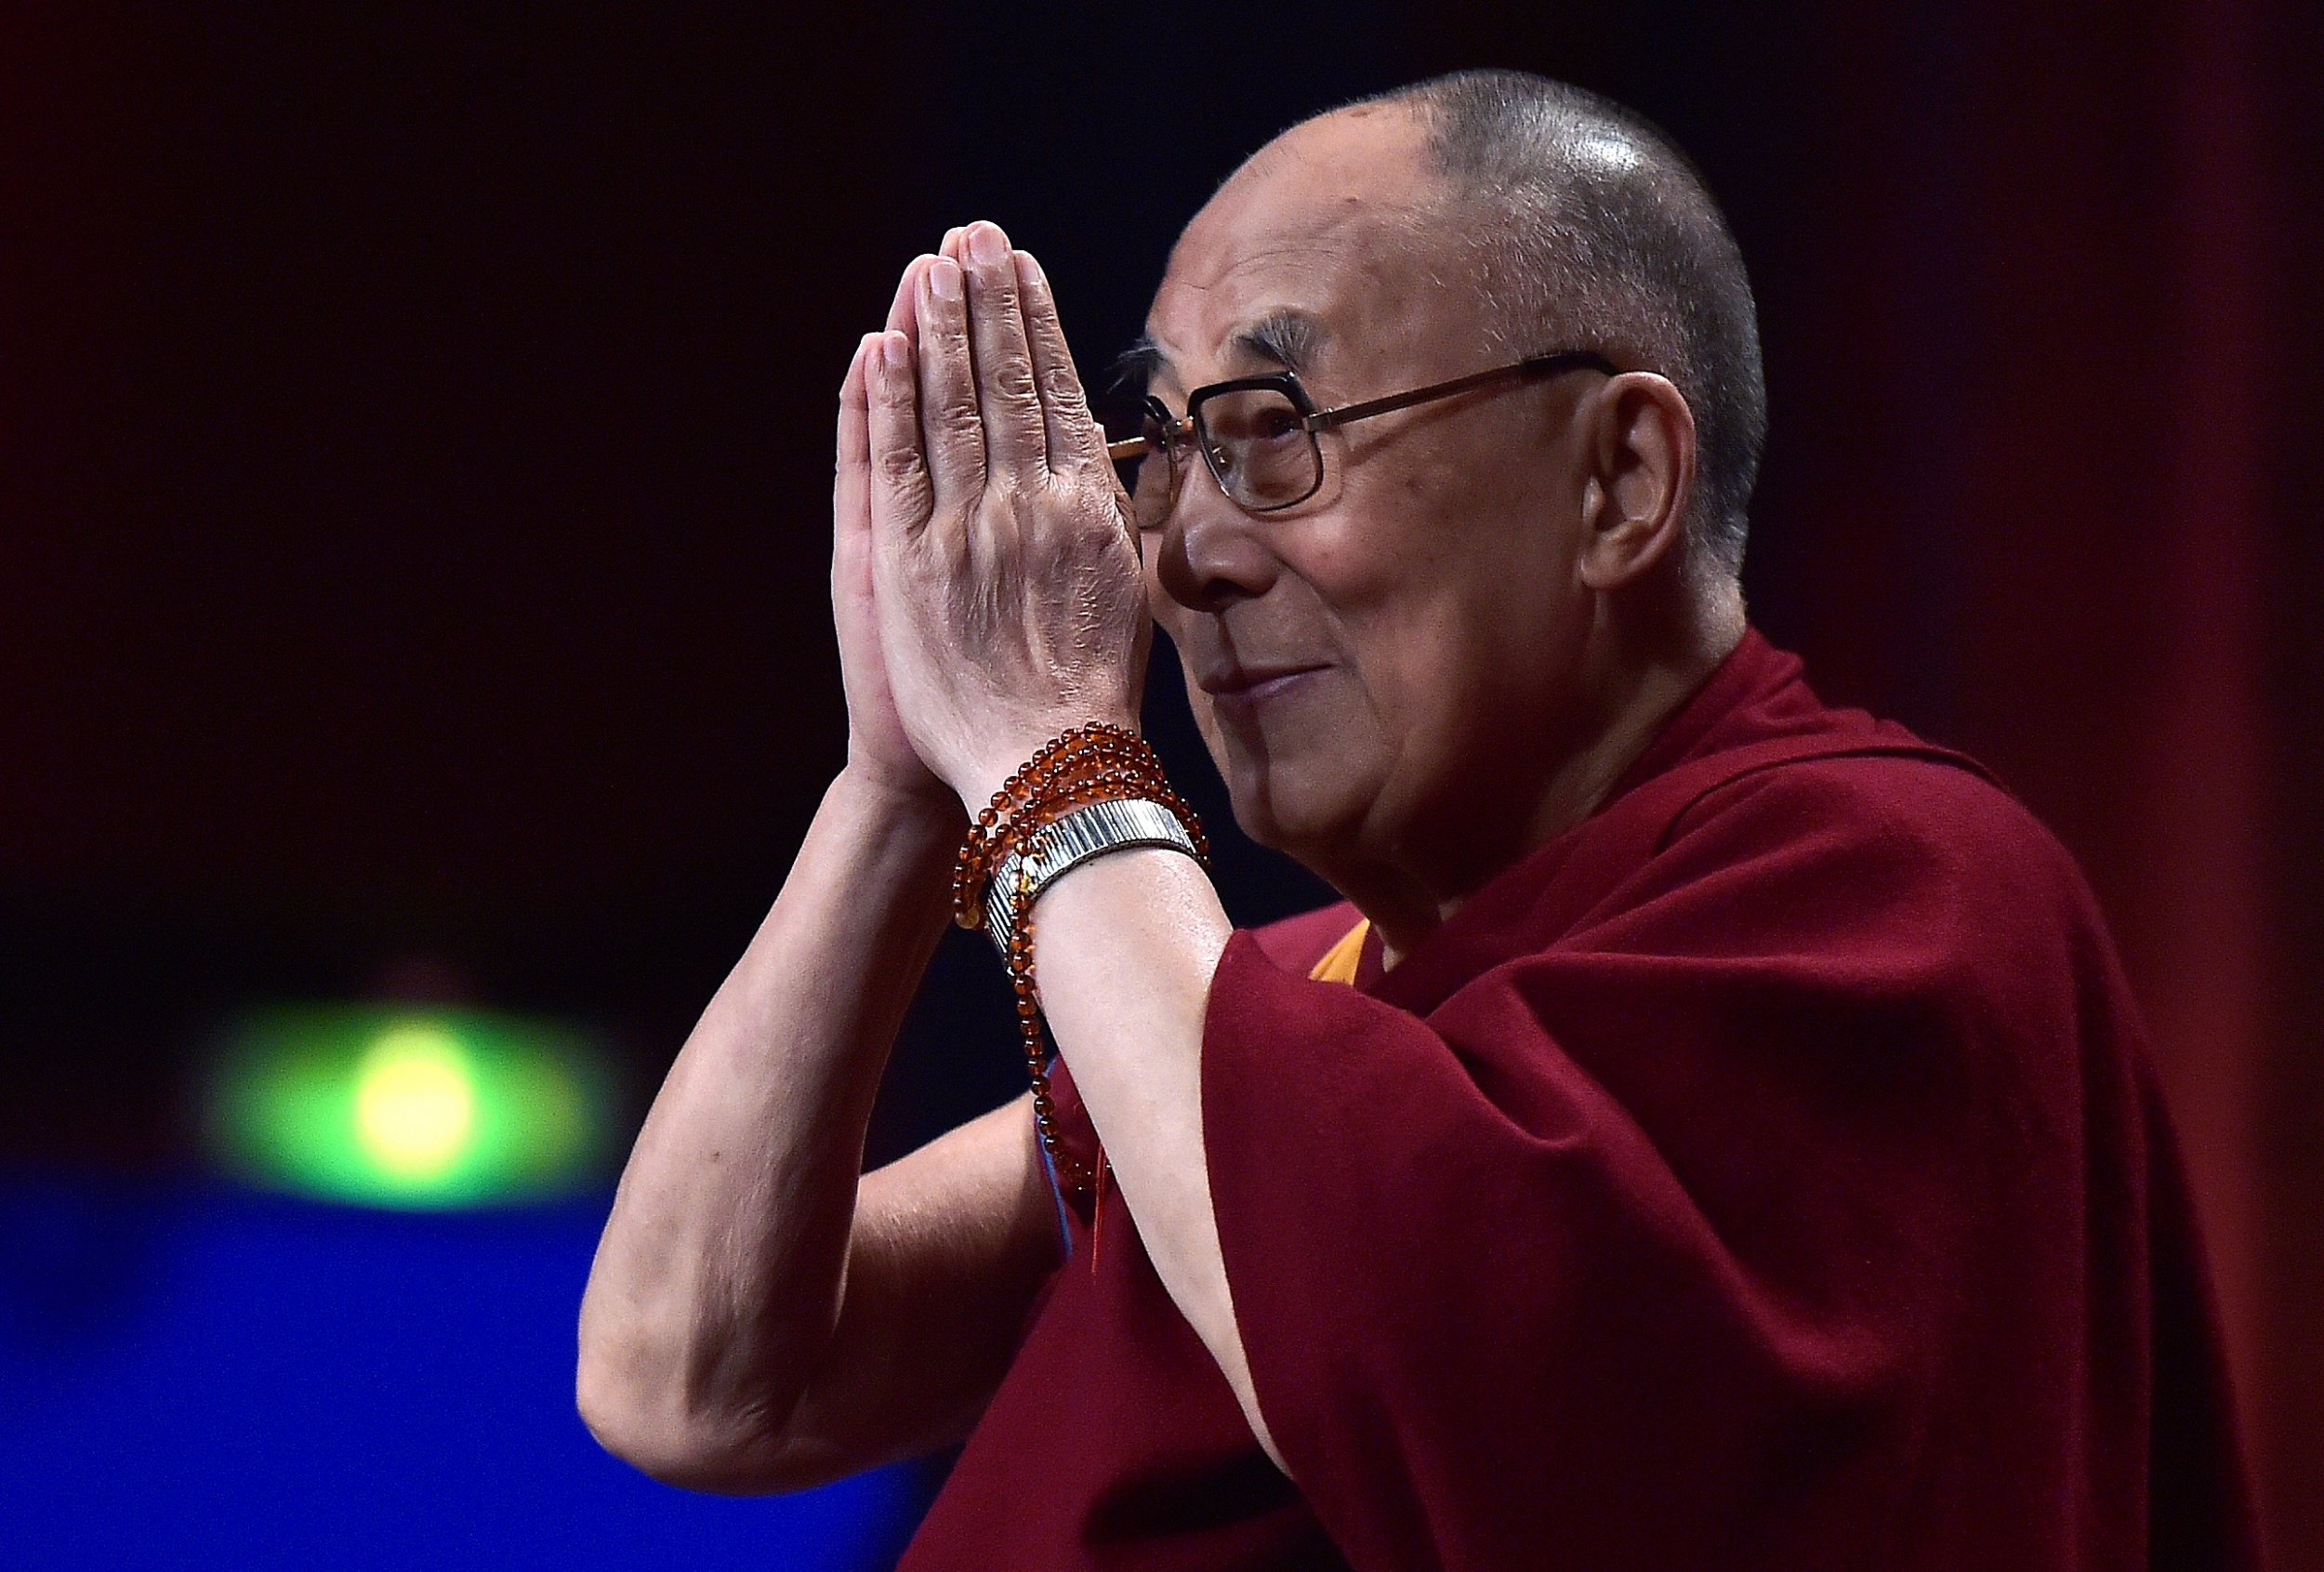 Dalai Lama Plans To Visit Donald Trump And Has No Worries About Presidency